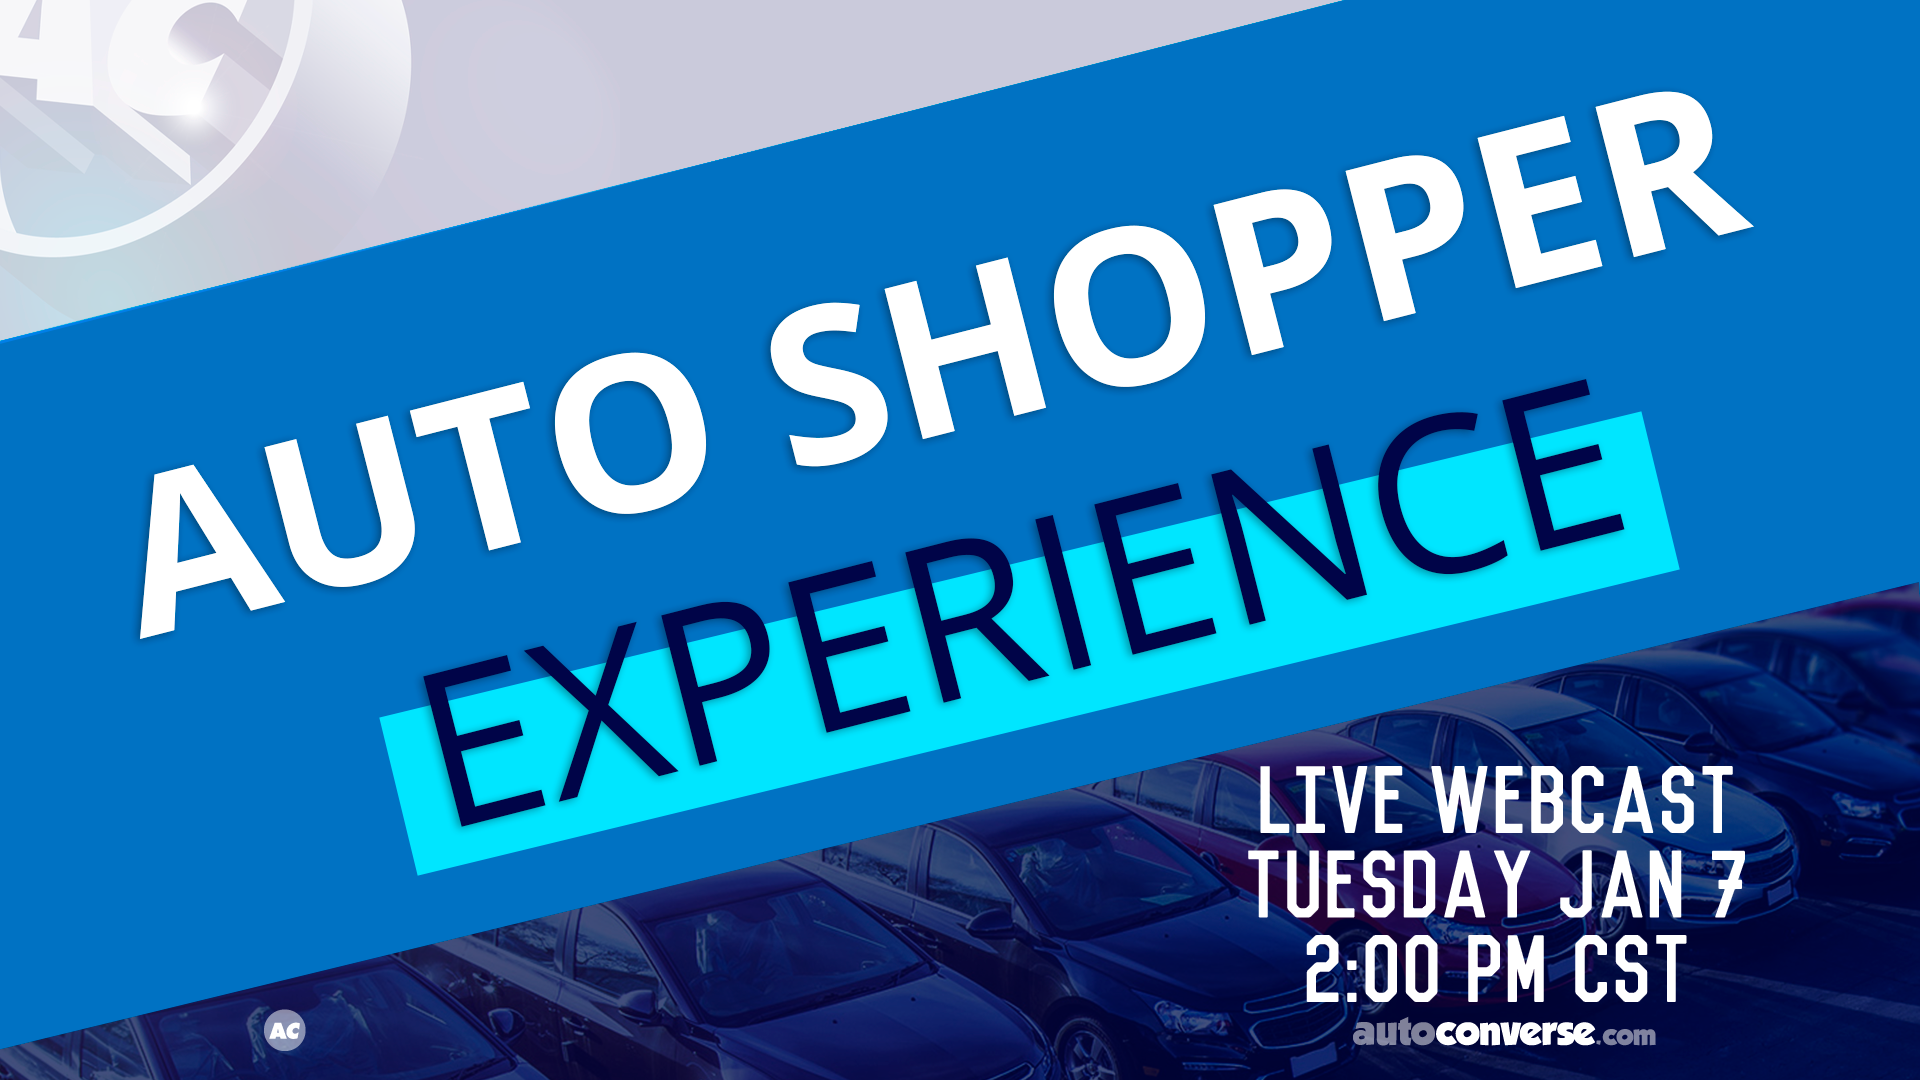 TUE JAN 7. The Auto Shopper Experience – Live Stories from Real-World Consumers